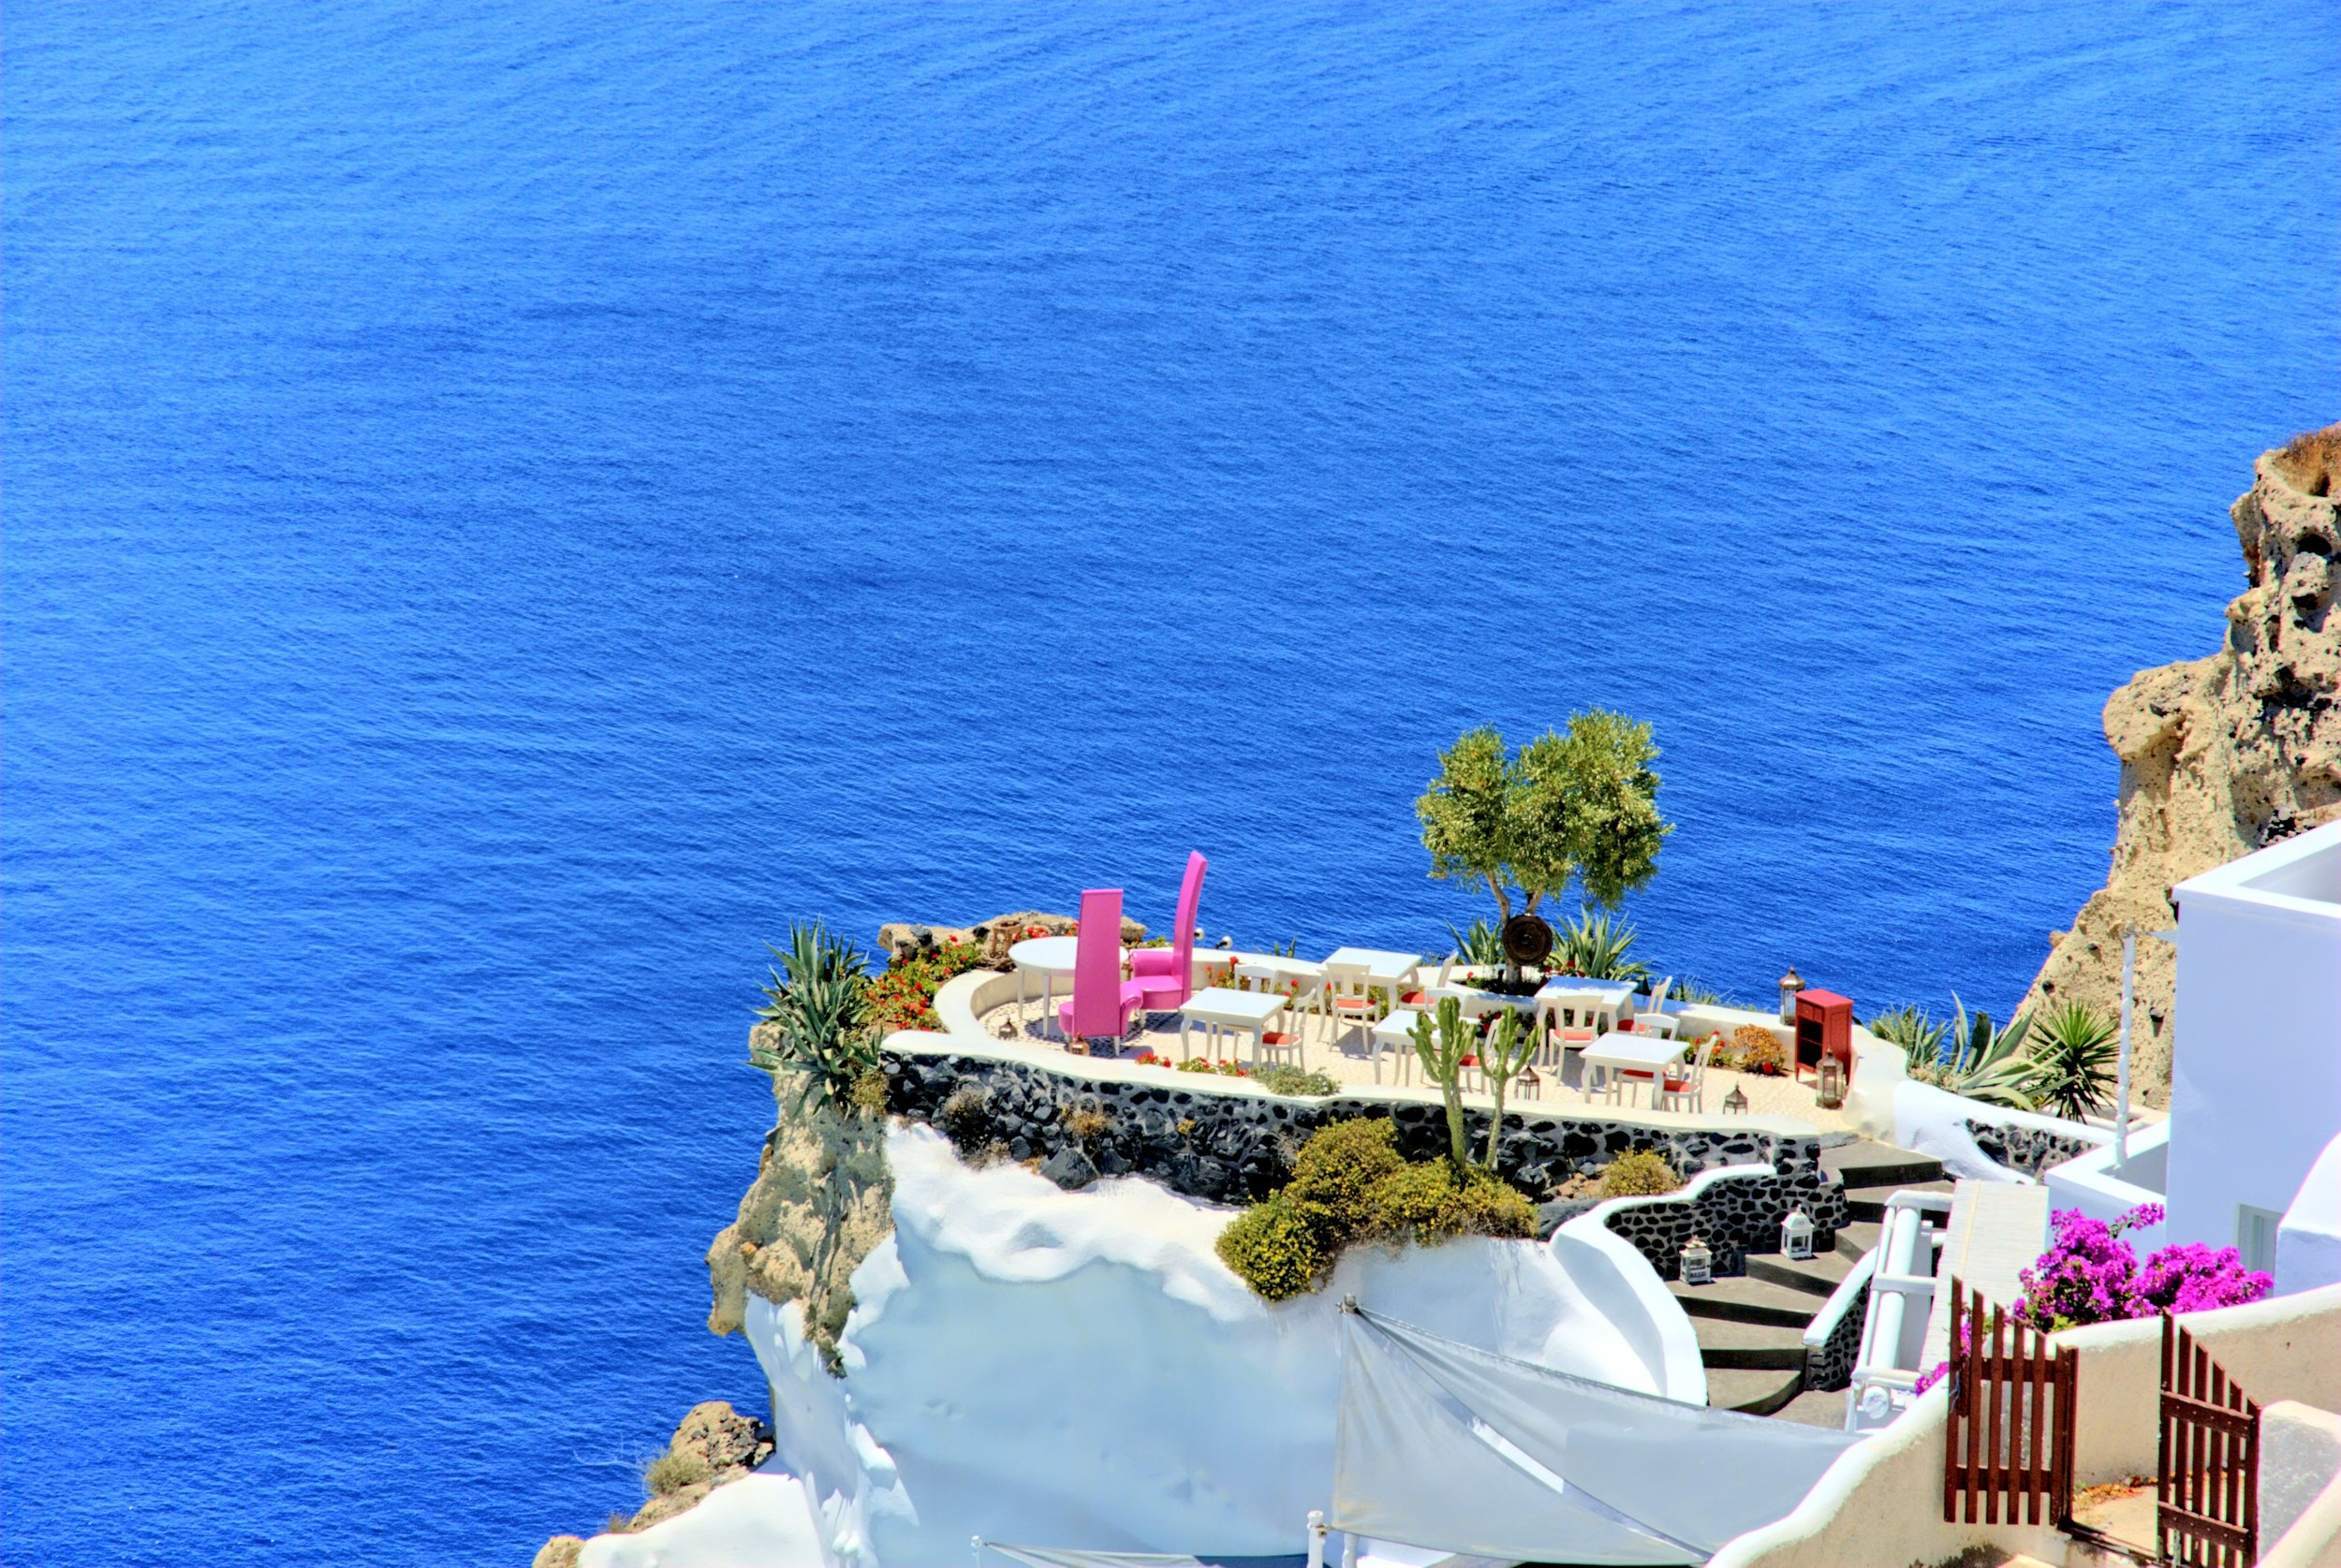 Looking out over Santorini, Greece